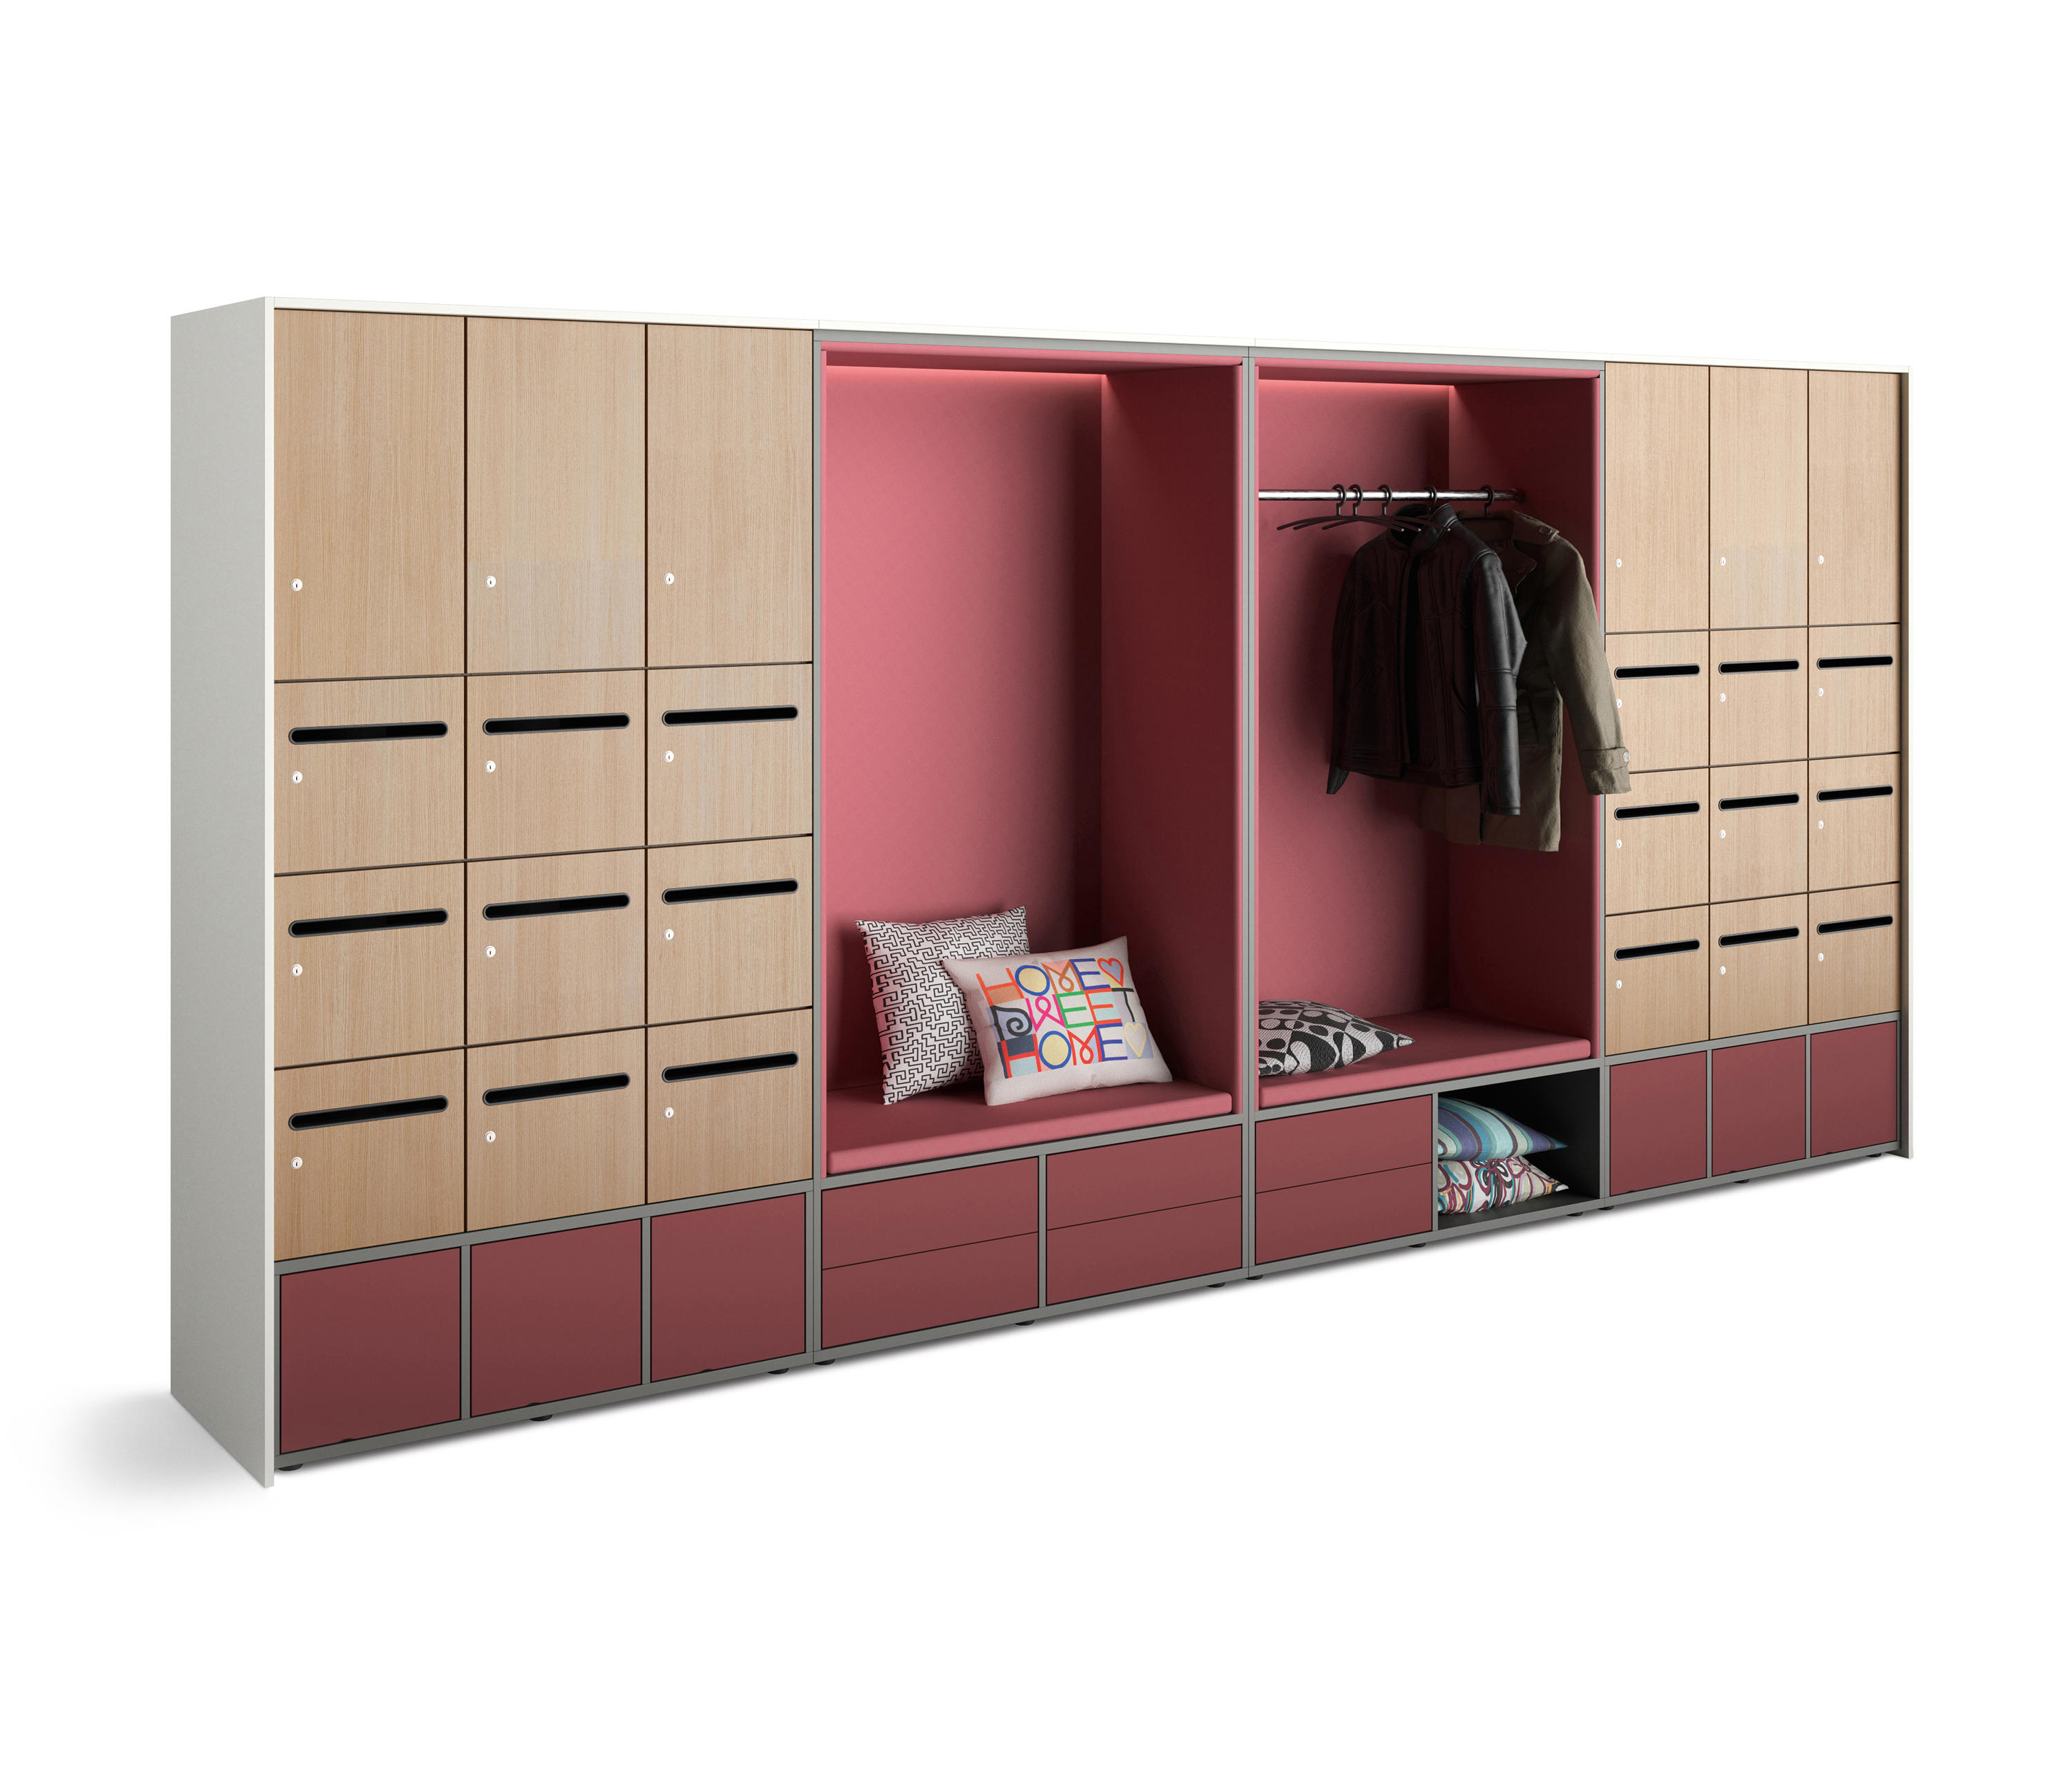 Basic S Cupboard Booths Phone Booth Architonic